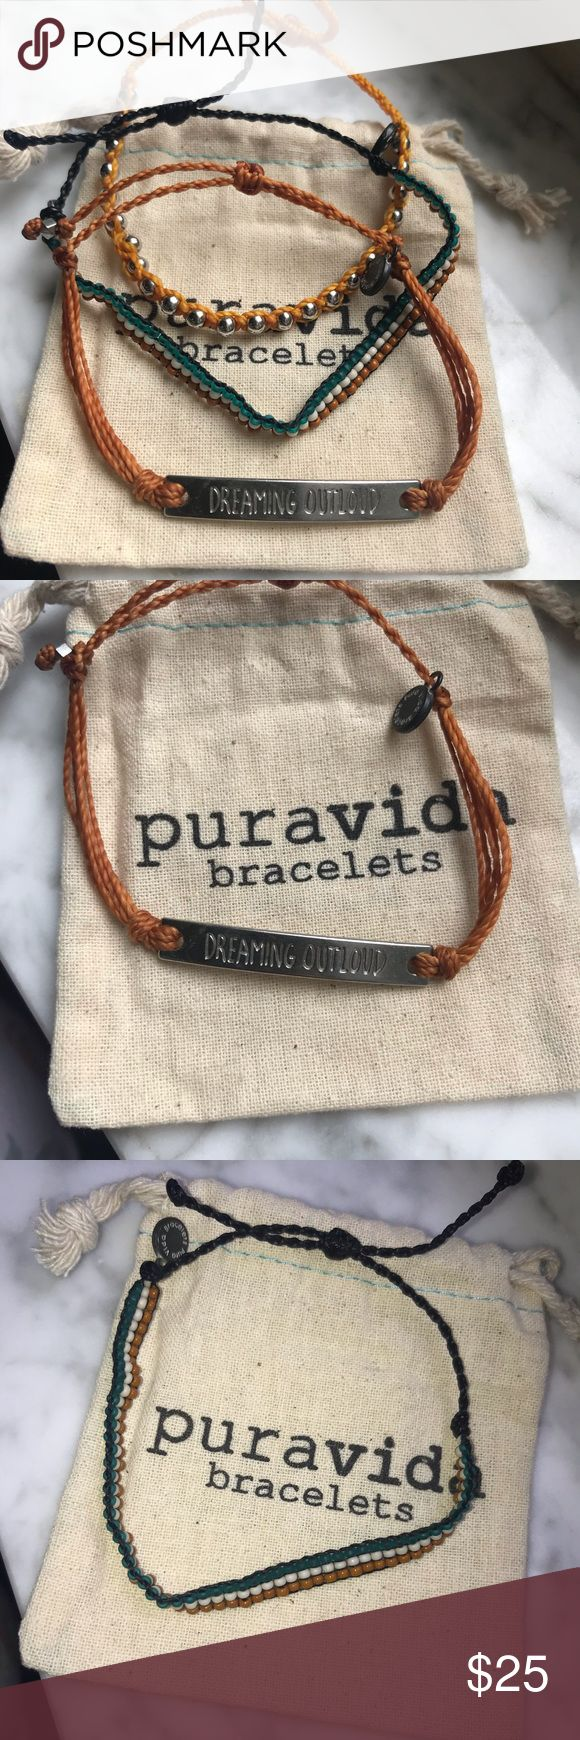 Pura Vida bracelets New without tags. I split up the 2019 Dreaming Outloud Pack … – My Posh Picks